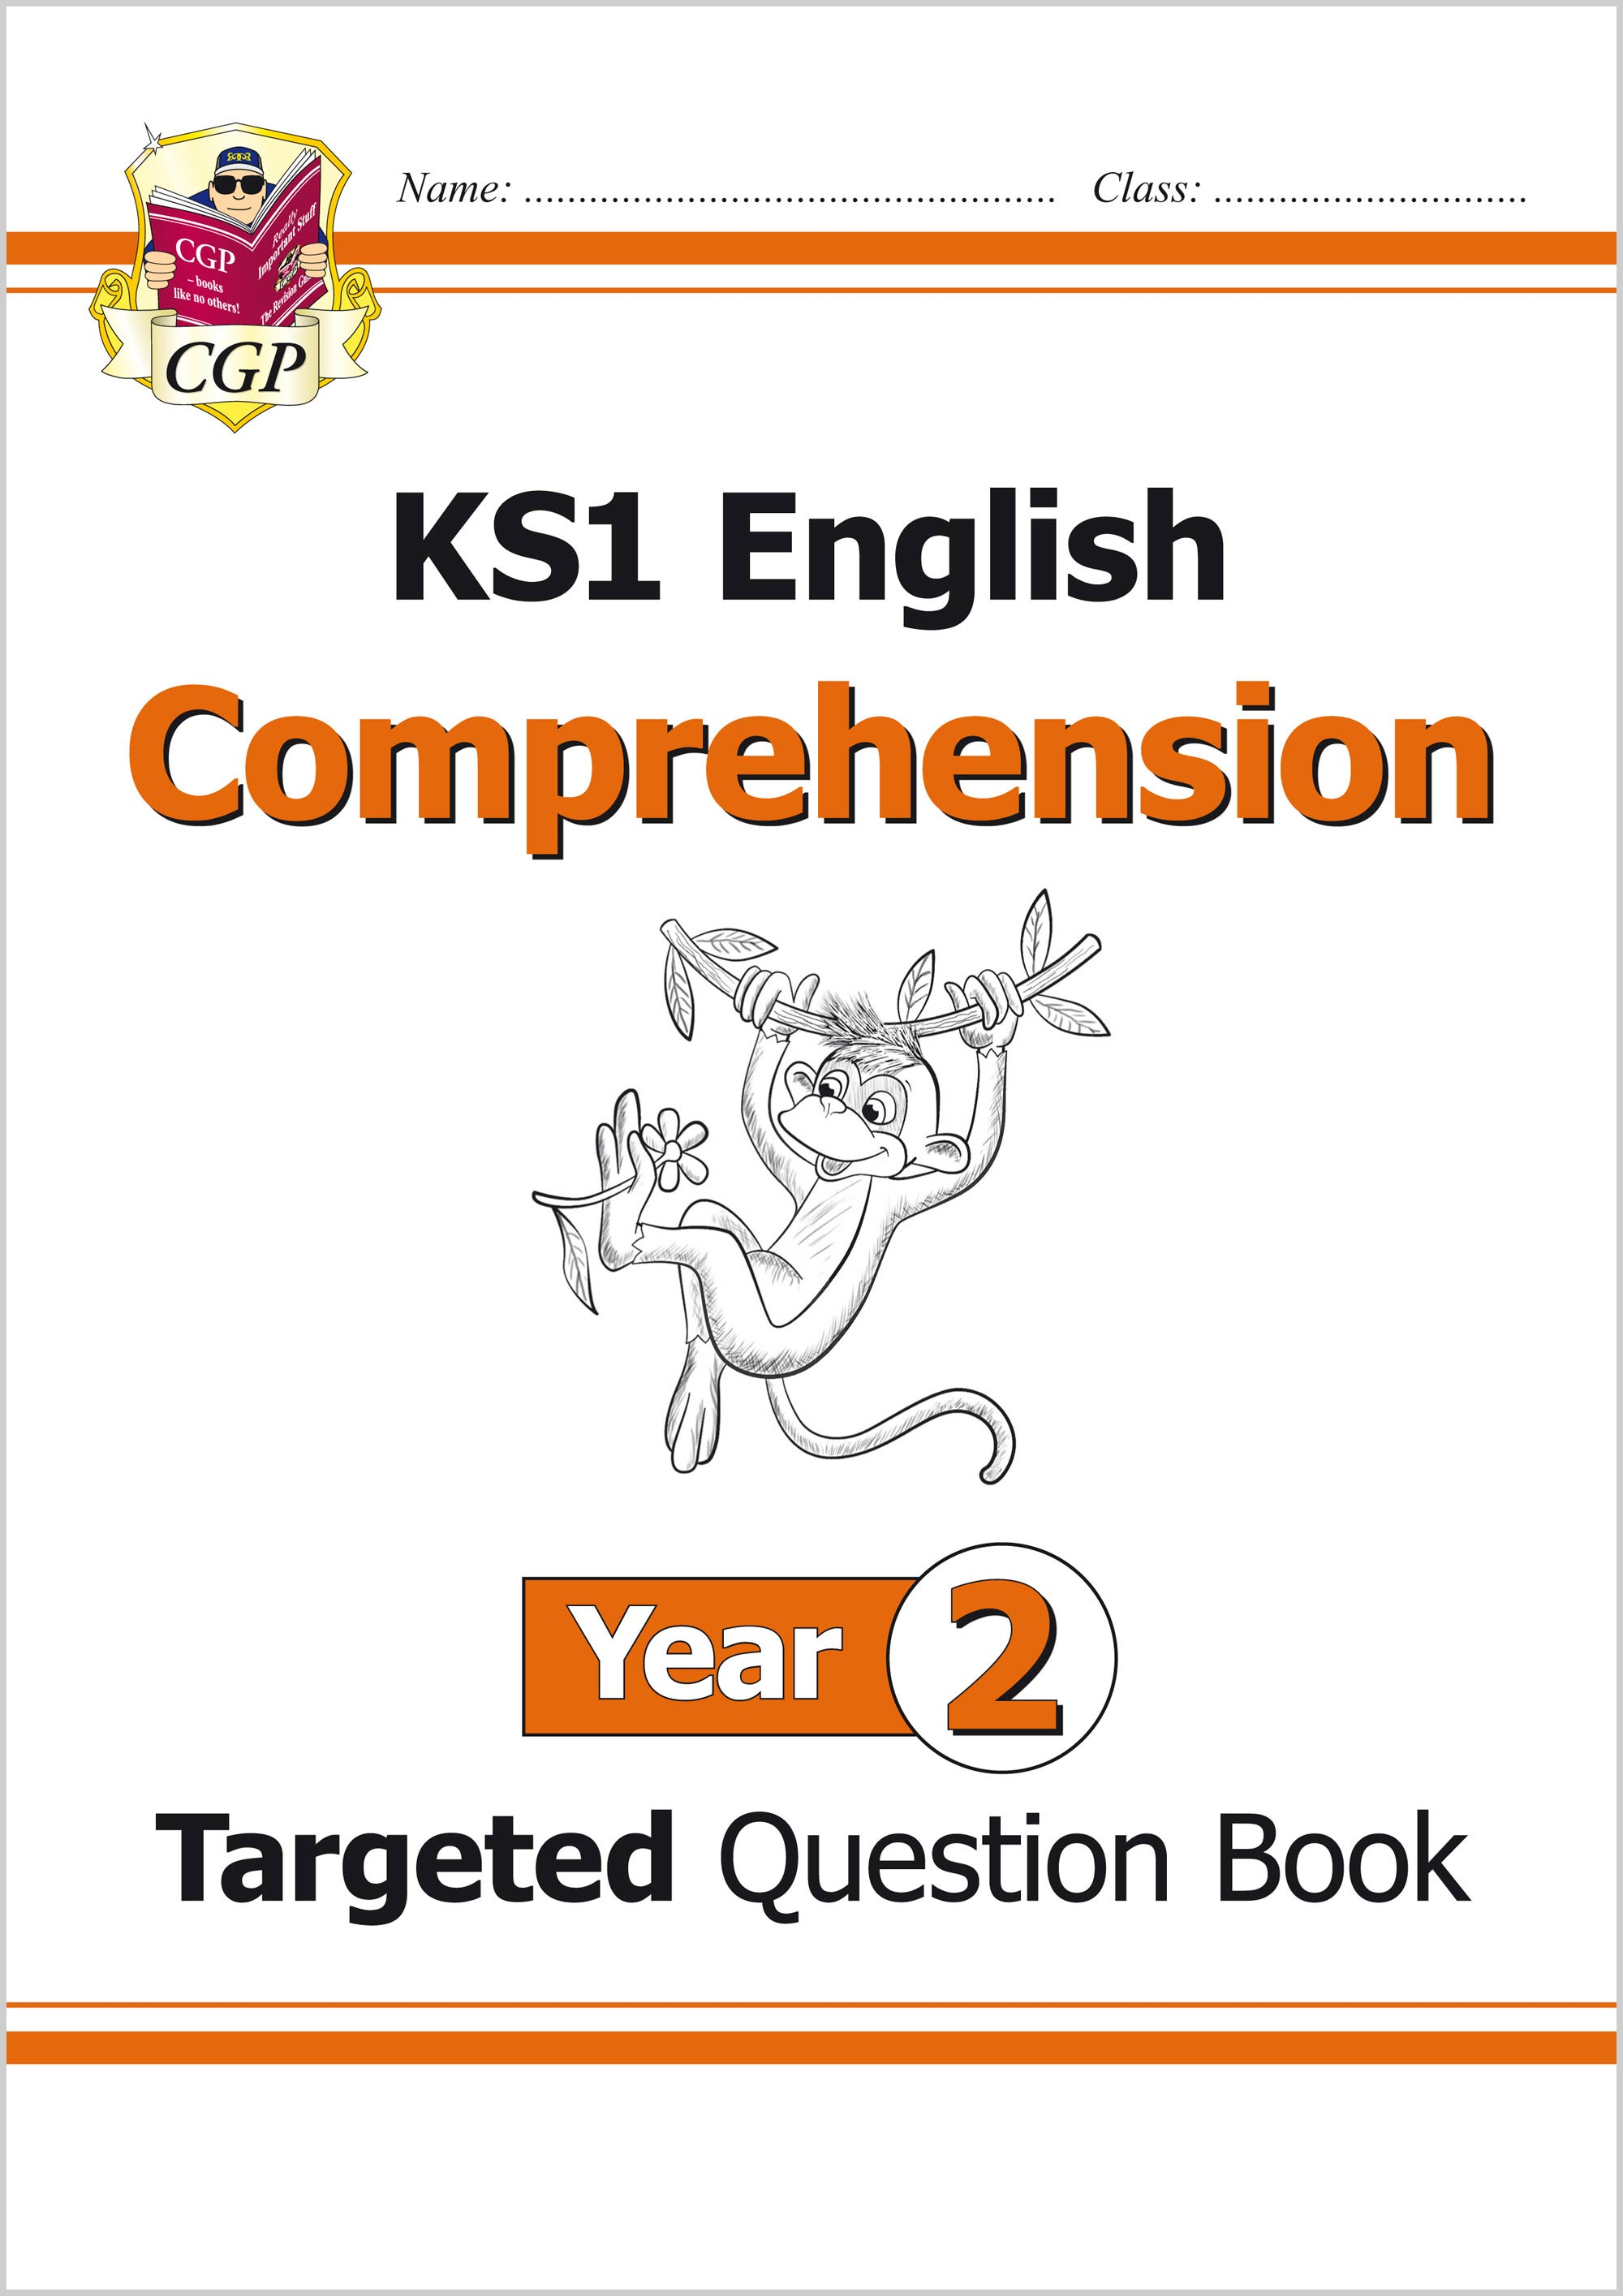 E2CW11 - KS1 English Targeted Question Book: Year 2 Comprehension - Book 1